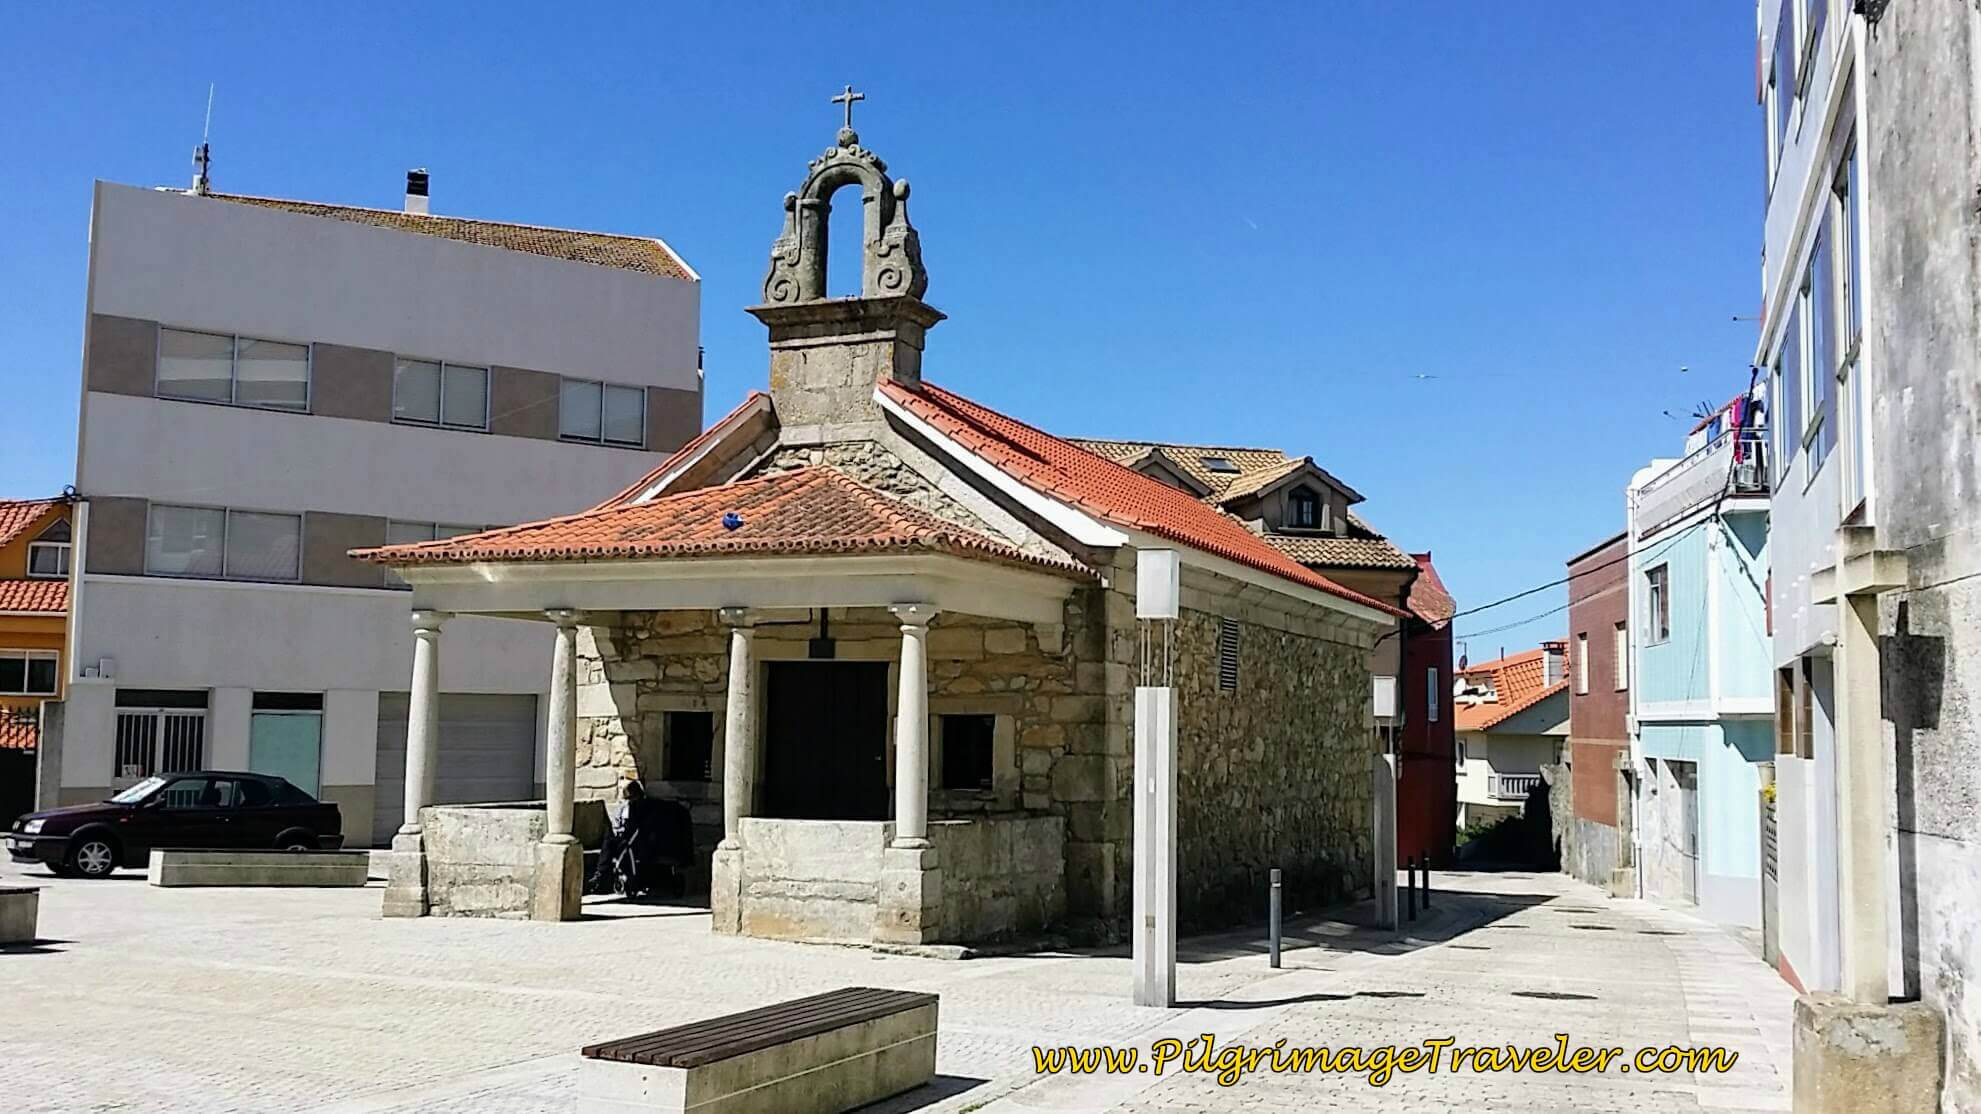 Capilla Virgen De La Guía in A Guarda on Day Nineteen of the Portuguese Way